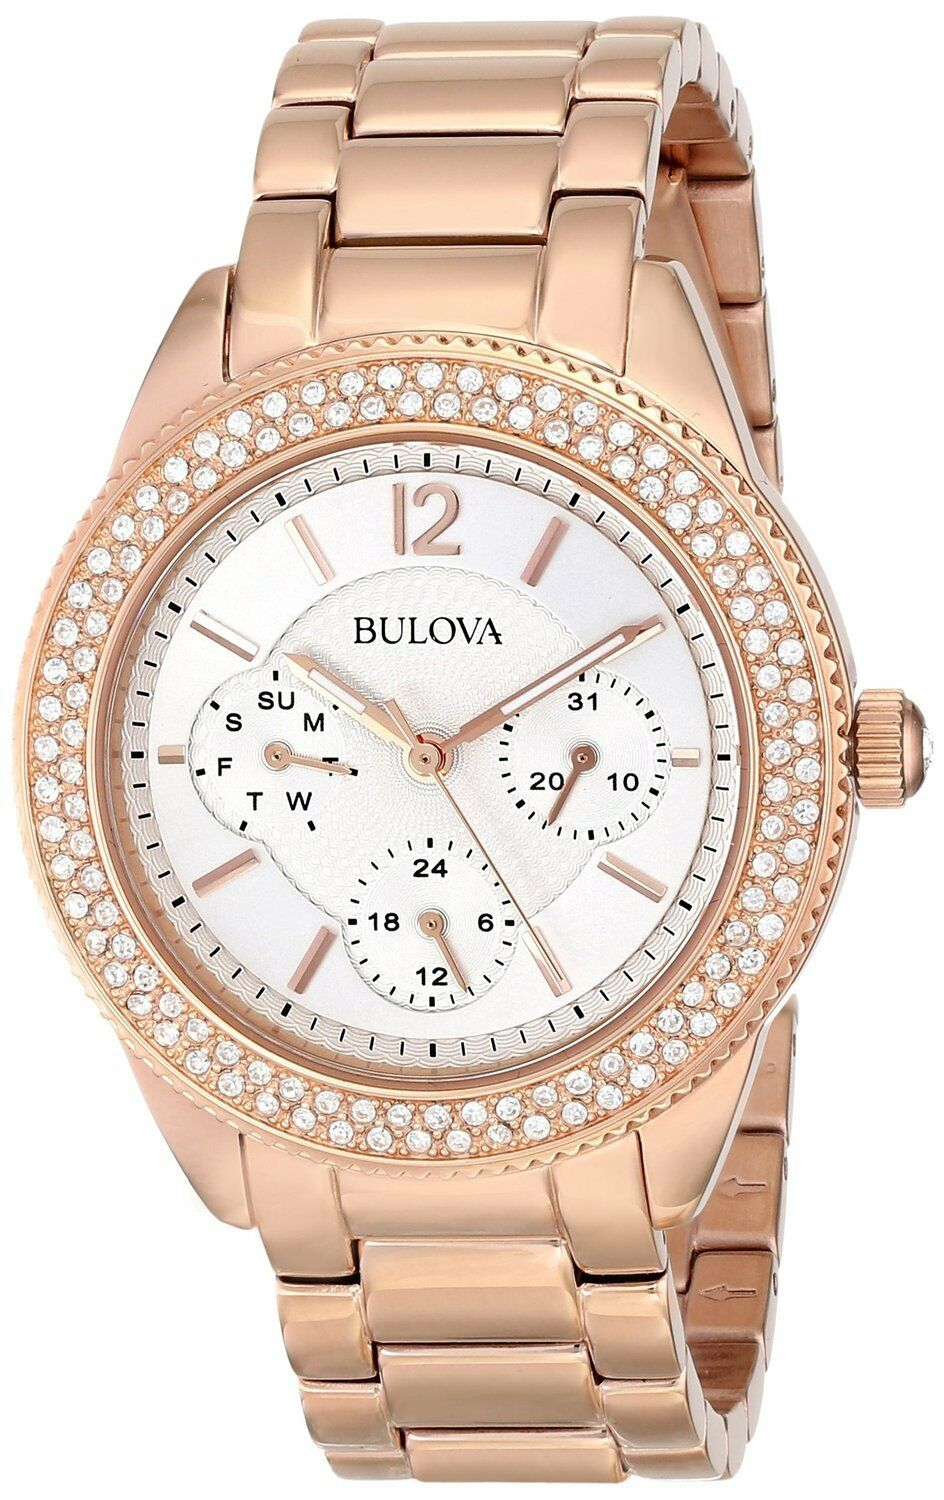 Bulova women 39 s 97n101 quartz swarovski crystal dial rose gold dress watch ebay for Crystal watches